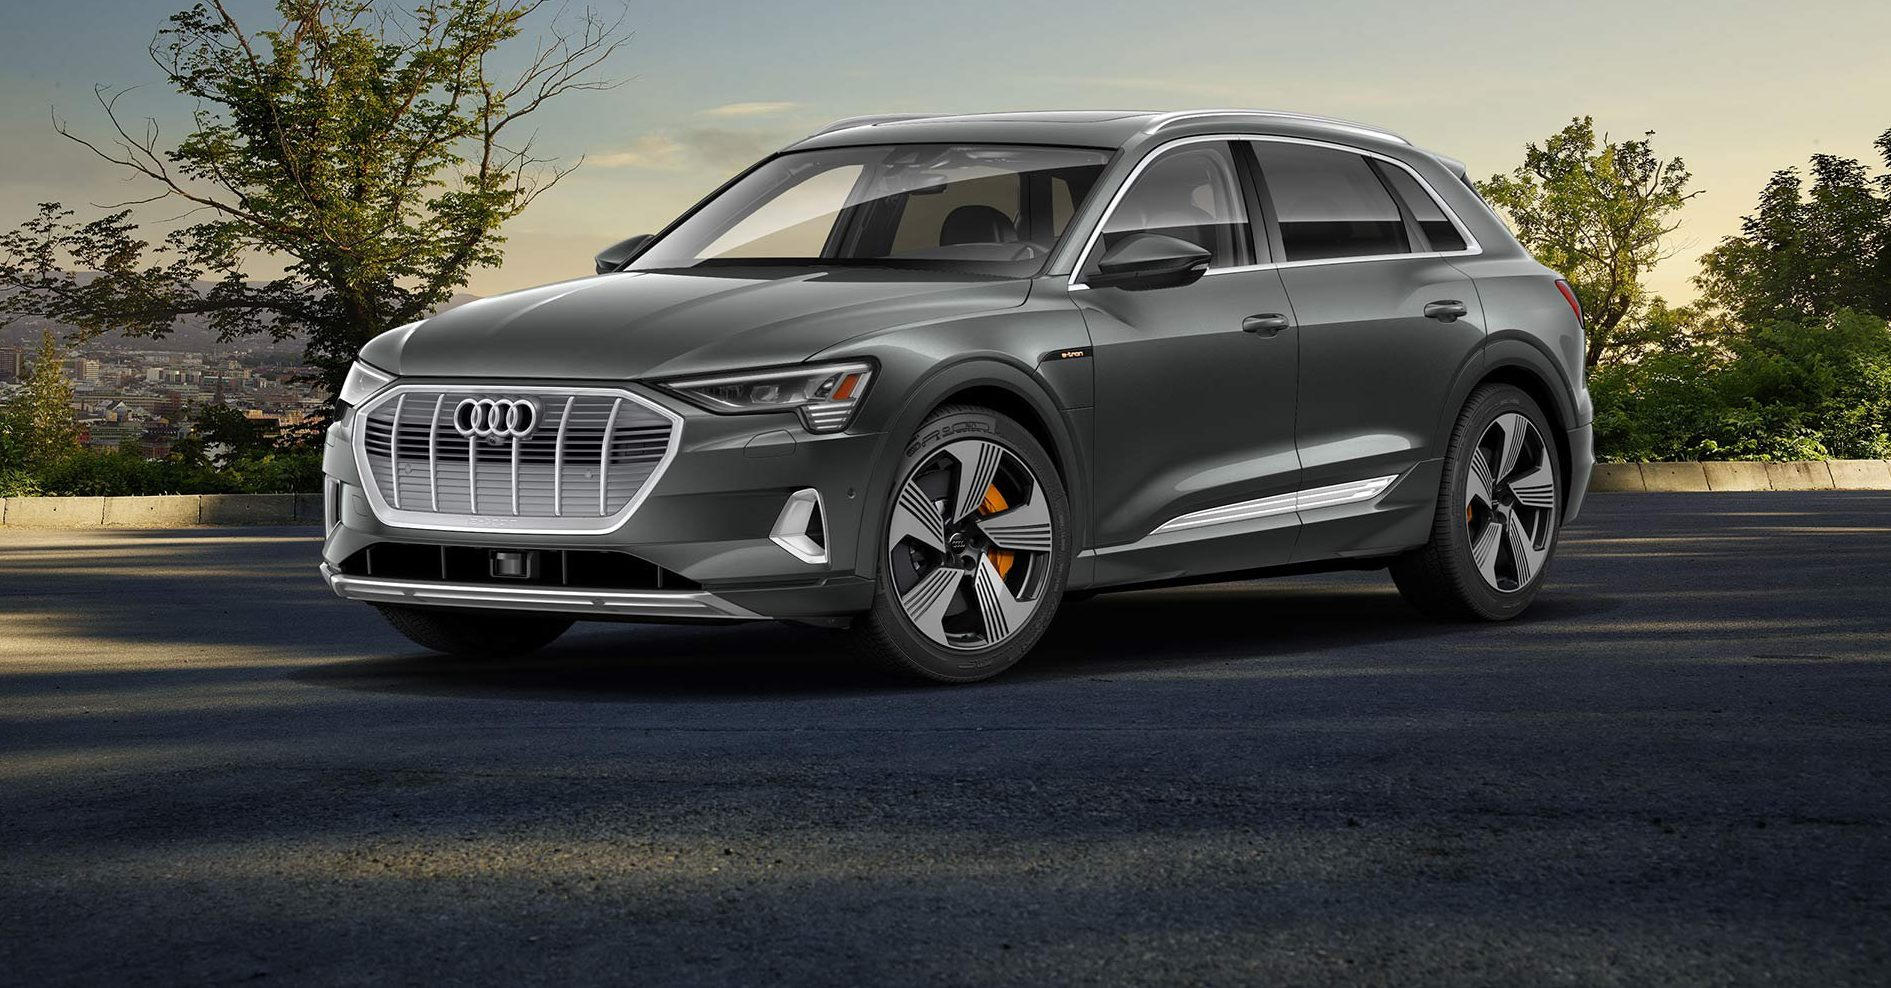 Tesla S Electric Car Prowess Acknowledged By Tsla Skeptic Amid Audi E Tron Reveal